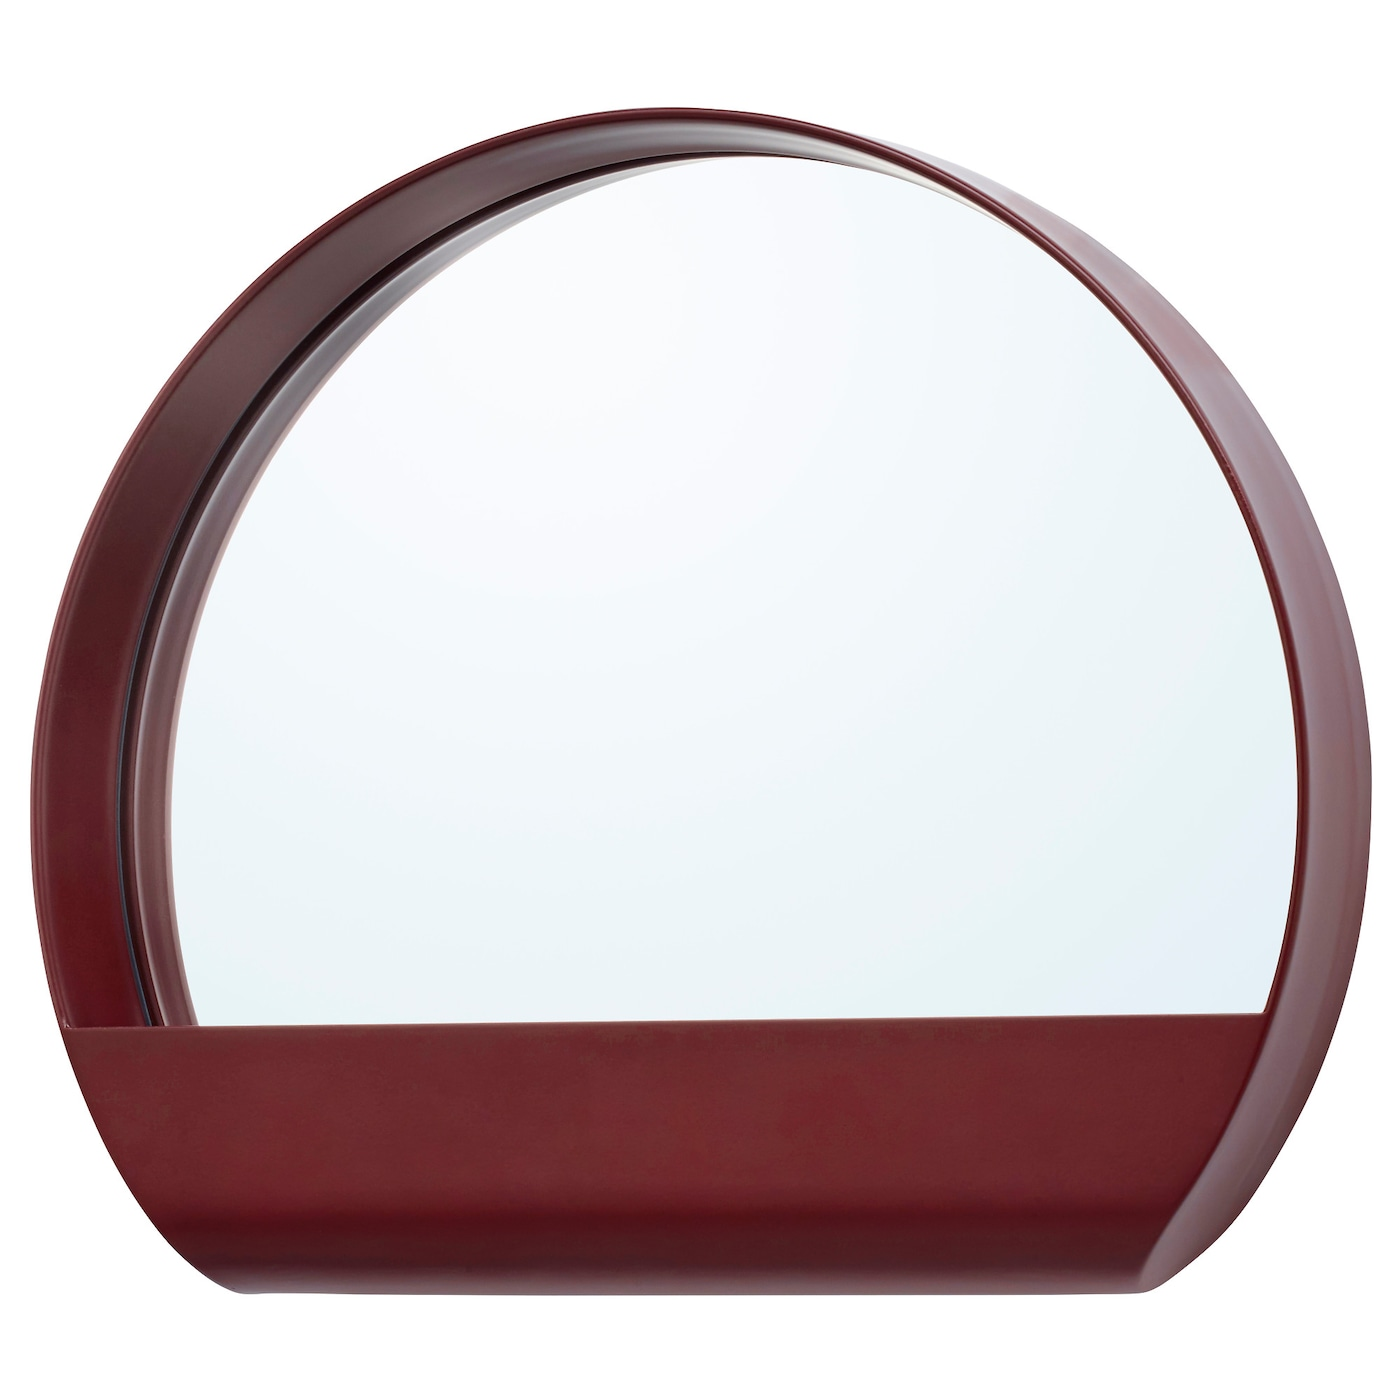 IKEA YPPERLIG mirror Suitable for use in most rooms, and tested and approved for bathroom use.